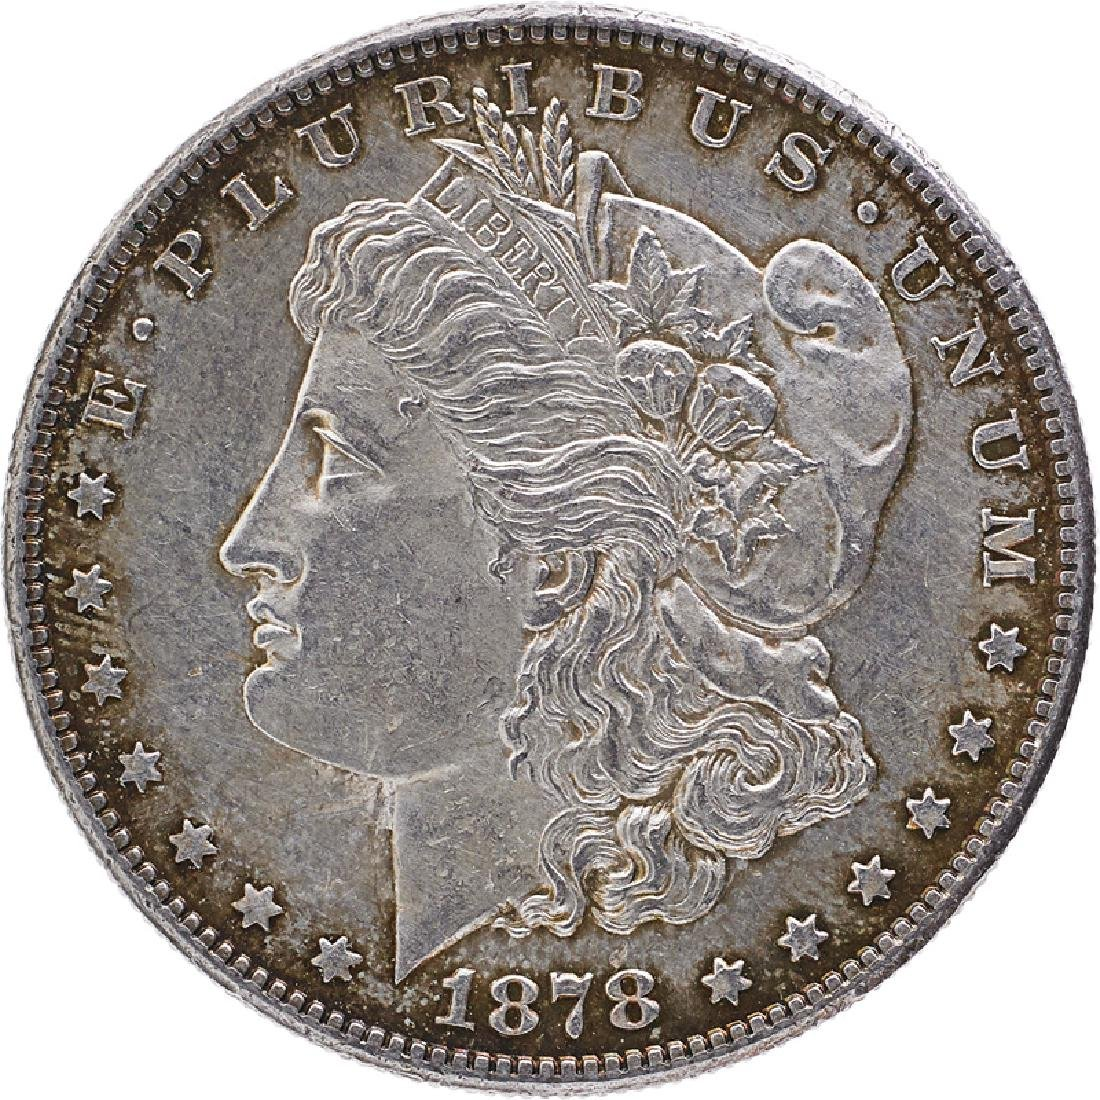 U.S. COIN GROUPING